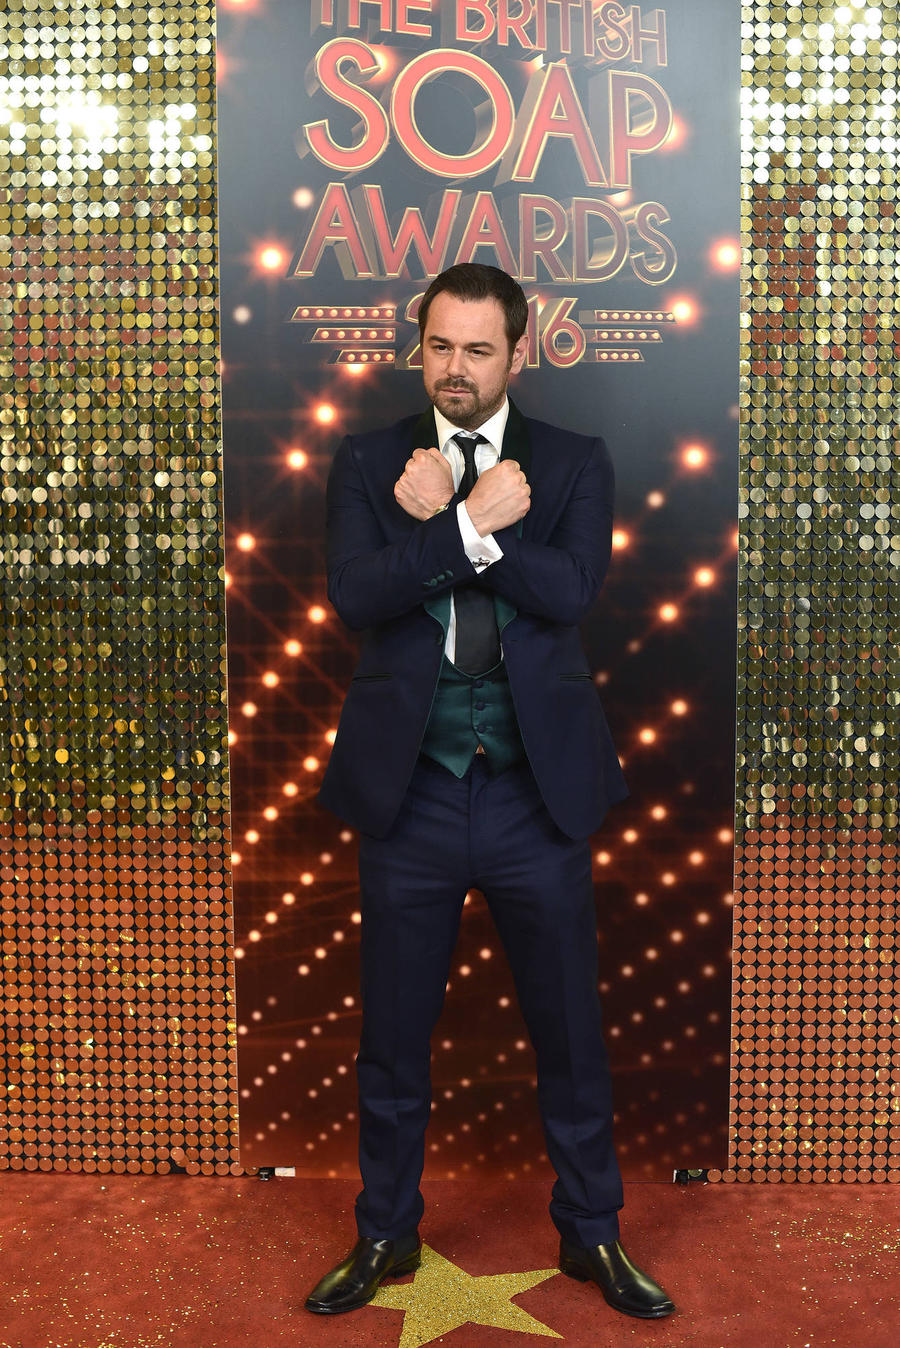 Actor Danny Dyer Given Enforced Break From British Soap - Report